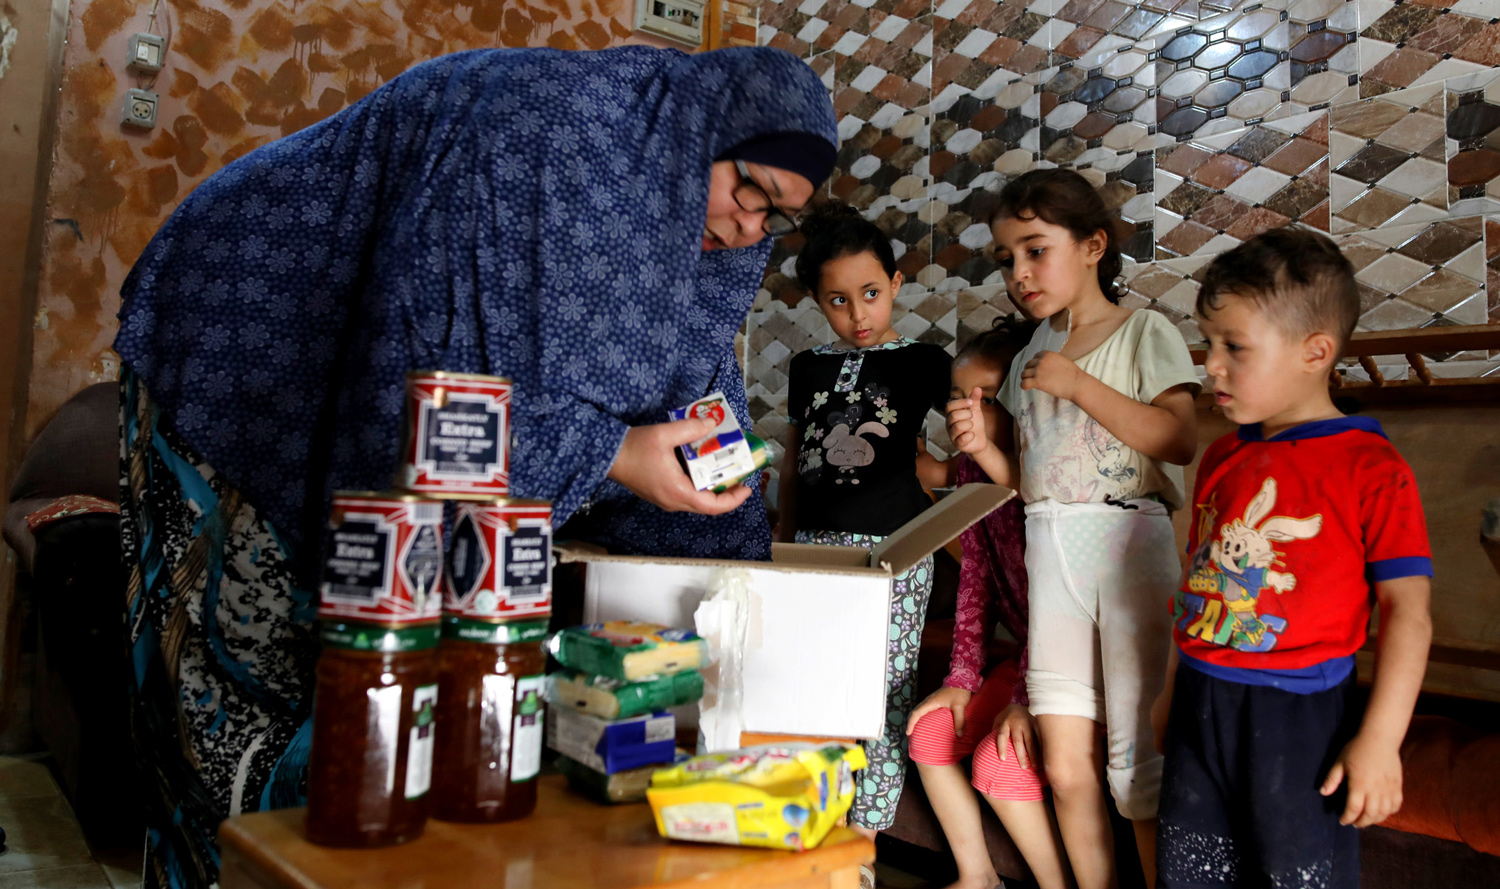 UNRWA delivers food parcels to Palestine refugee families in Gaza. © 2020 UNRWA Photo by Hussein Jaber